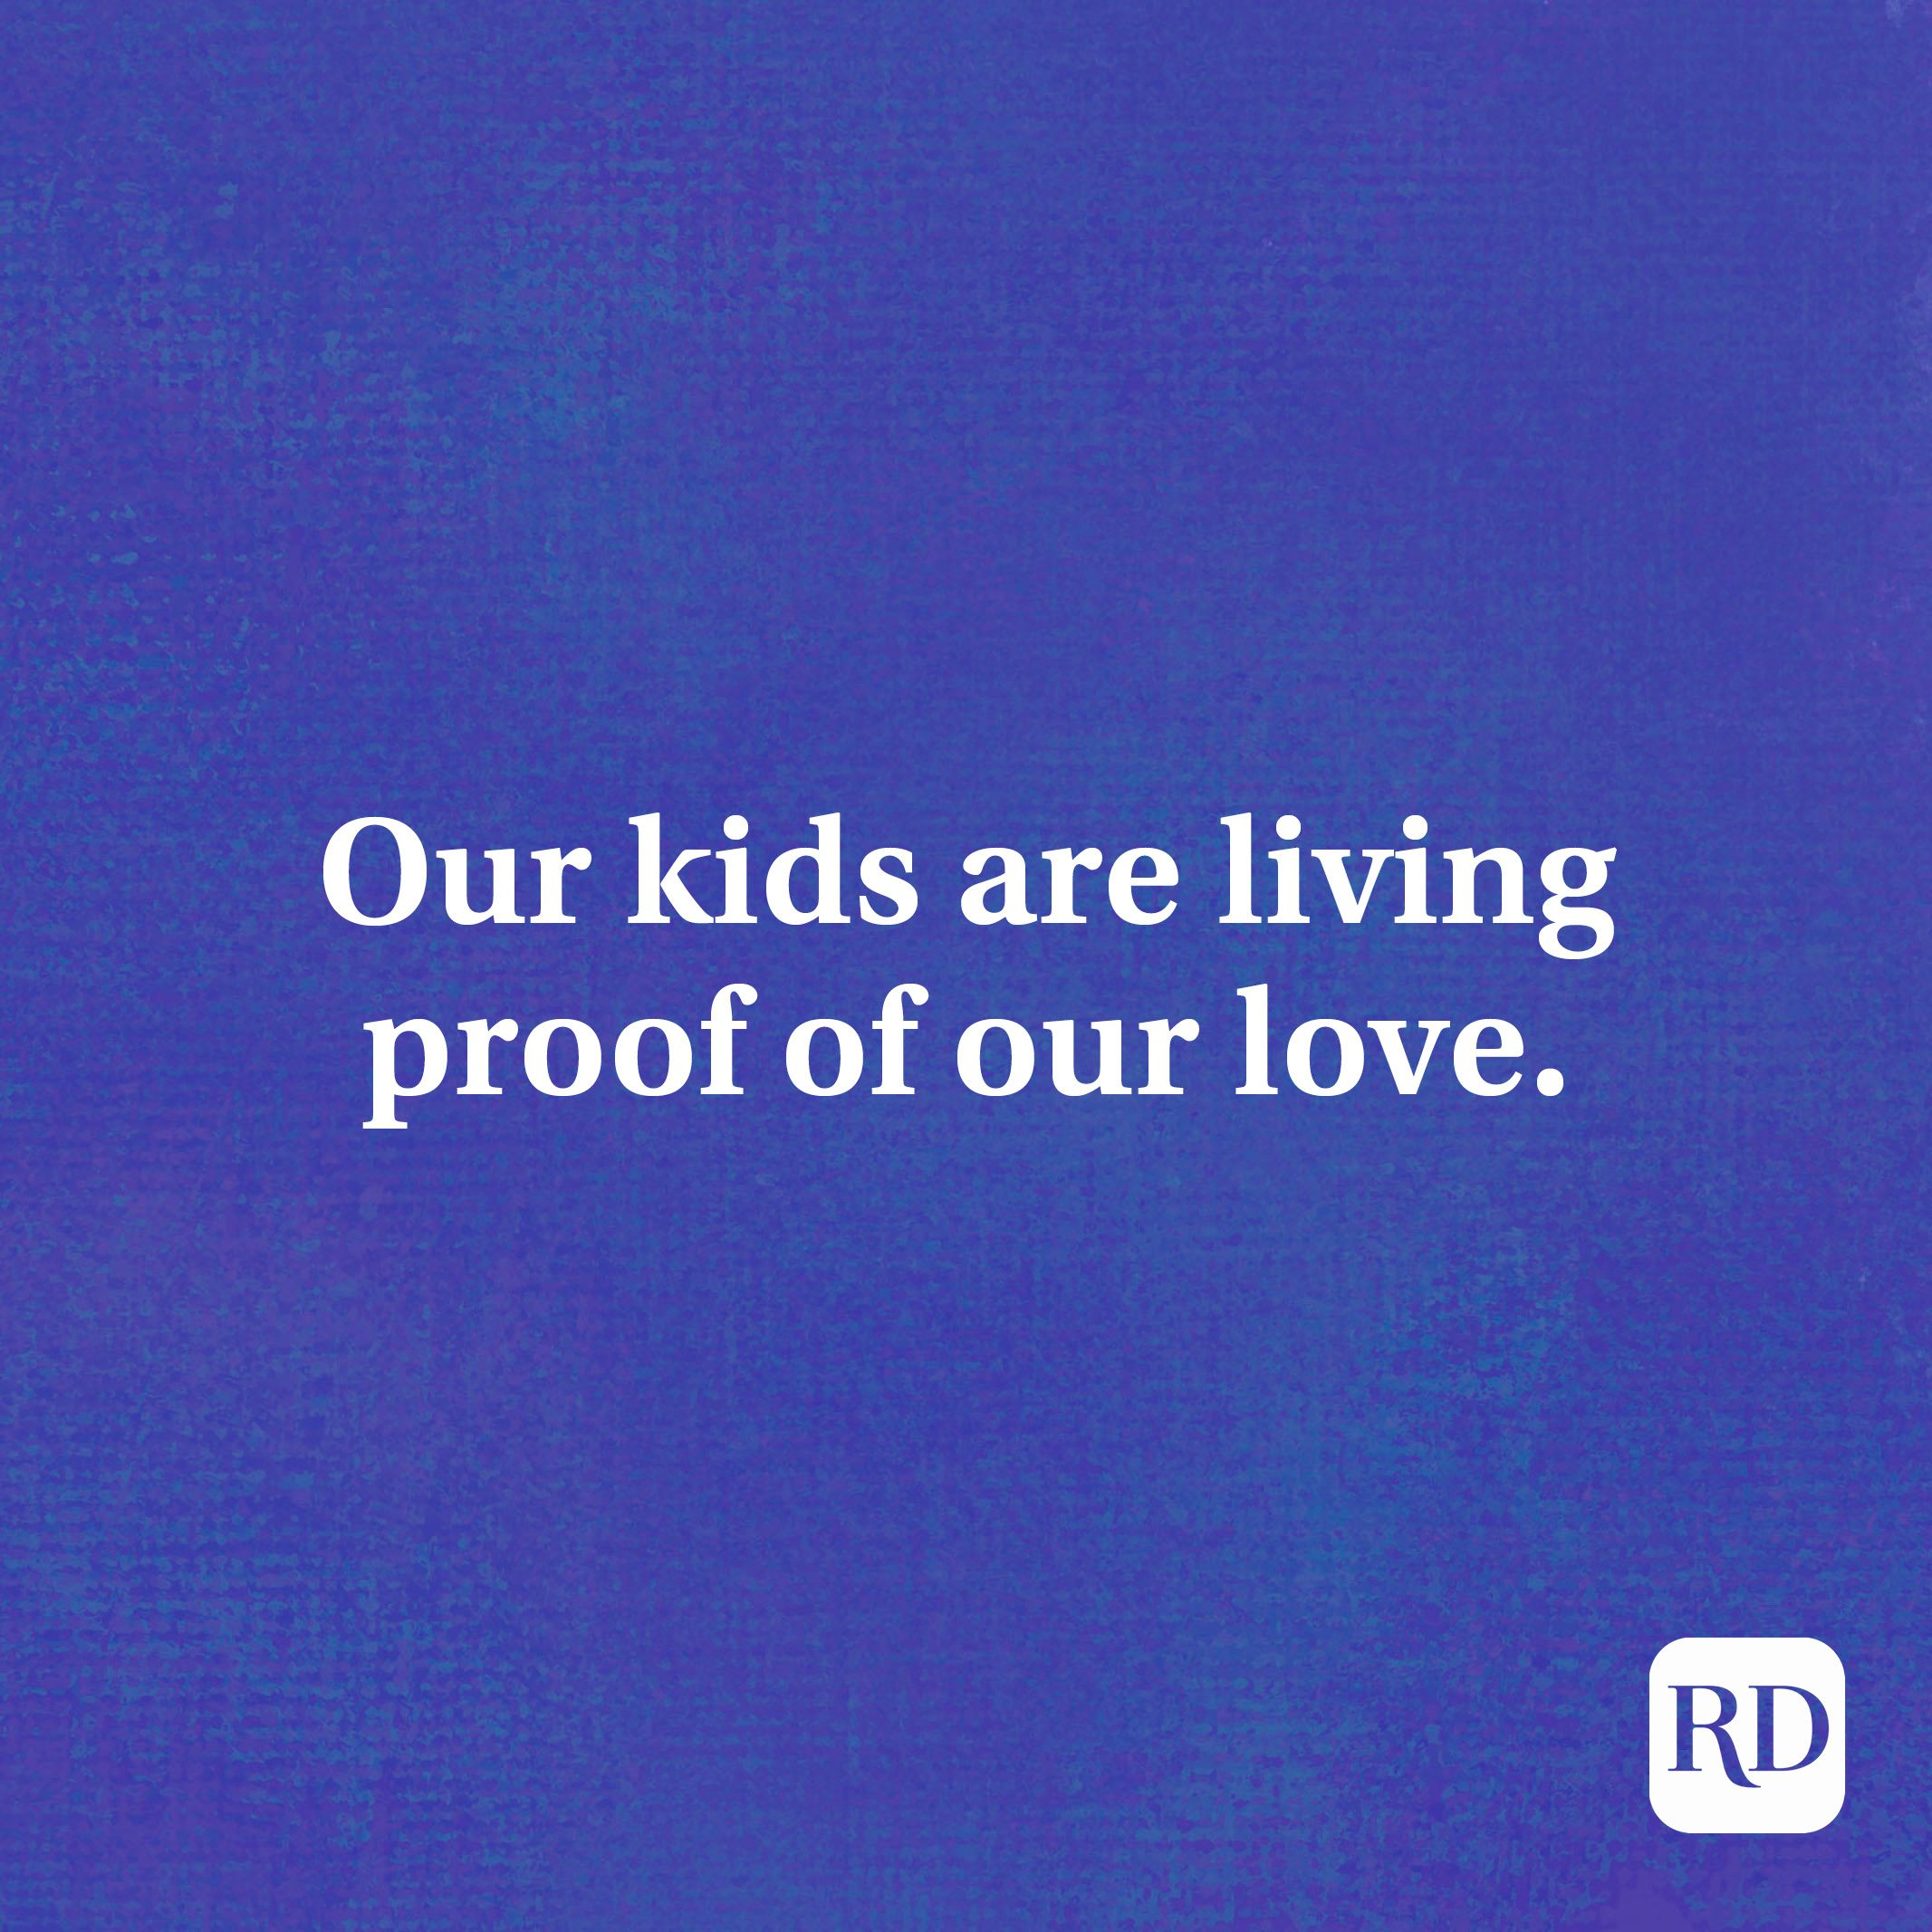 Our kids are living proof of our love.